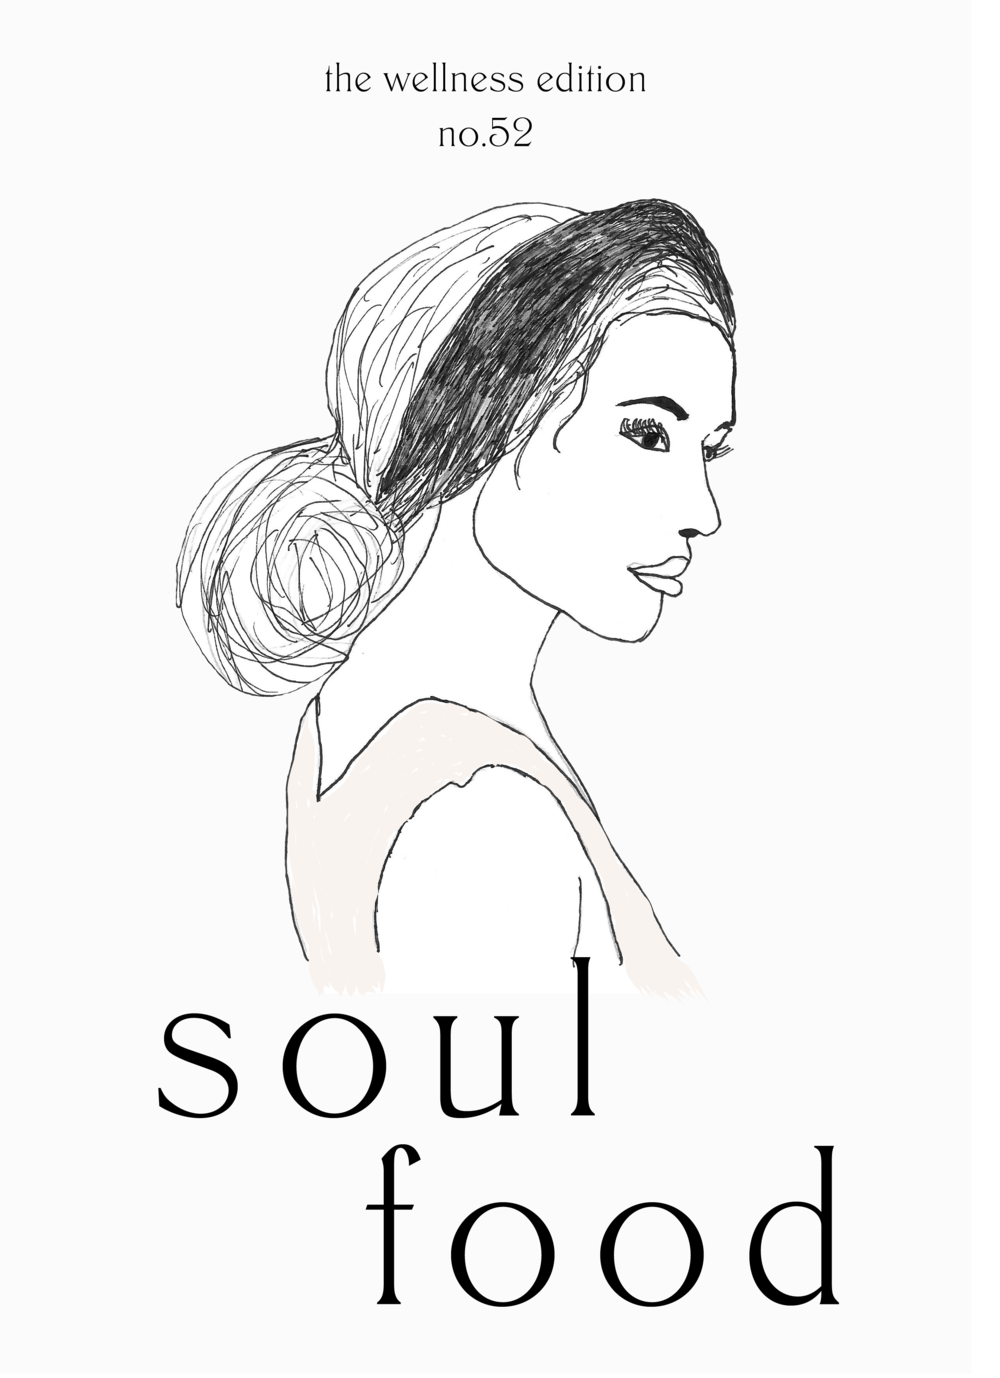 The Wellness Edition No.52 // Soul Food (Phylleli Design Studio and Self-Care Blog)